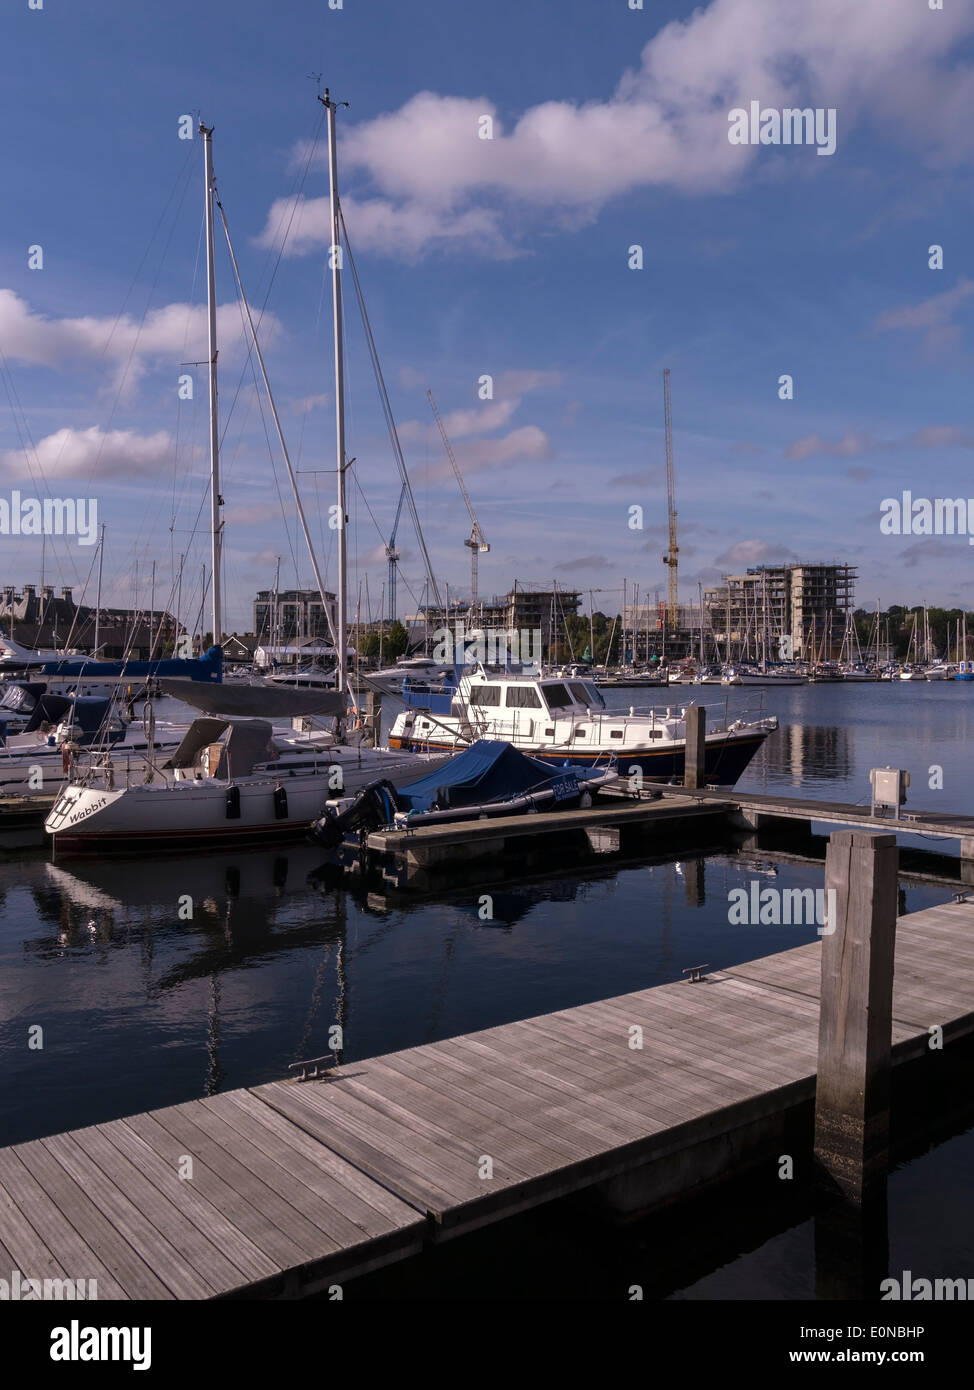 Neptune marina with extensive building work and cranes in the distance during dockside redevelopment / regeneration, Ipswich - Stock Image